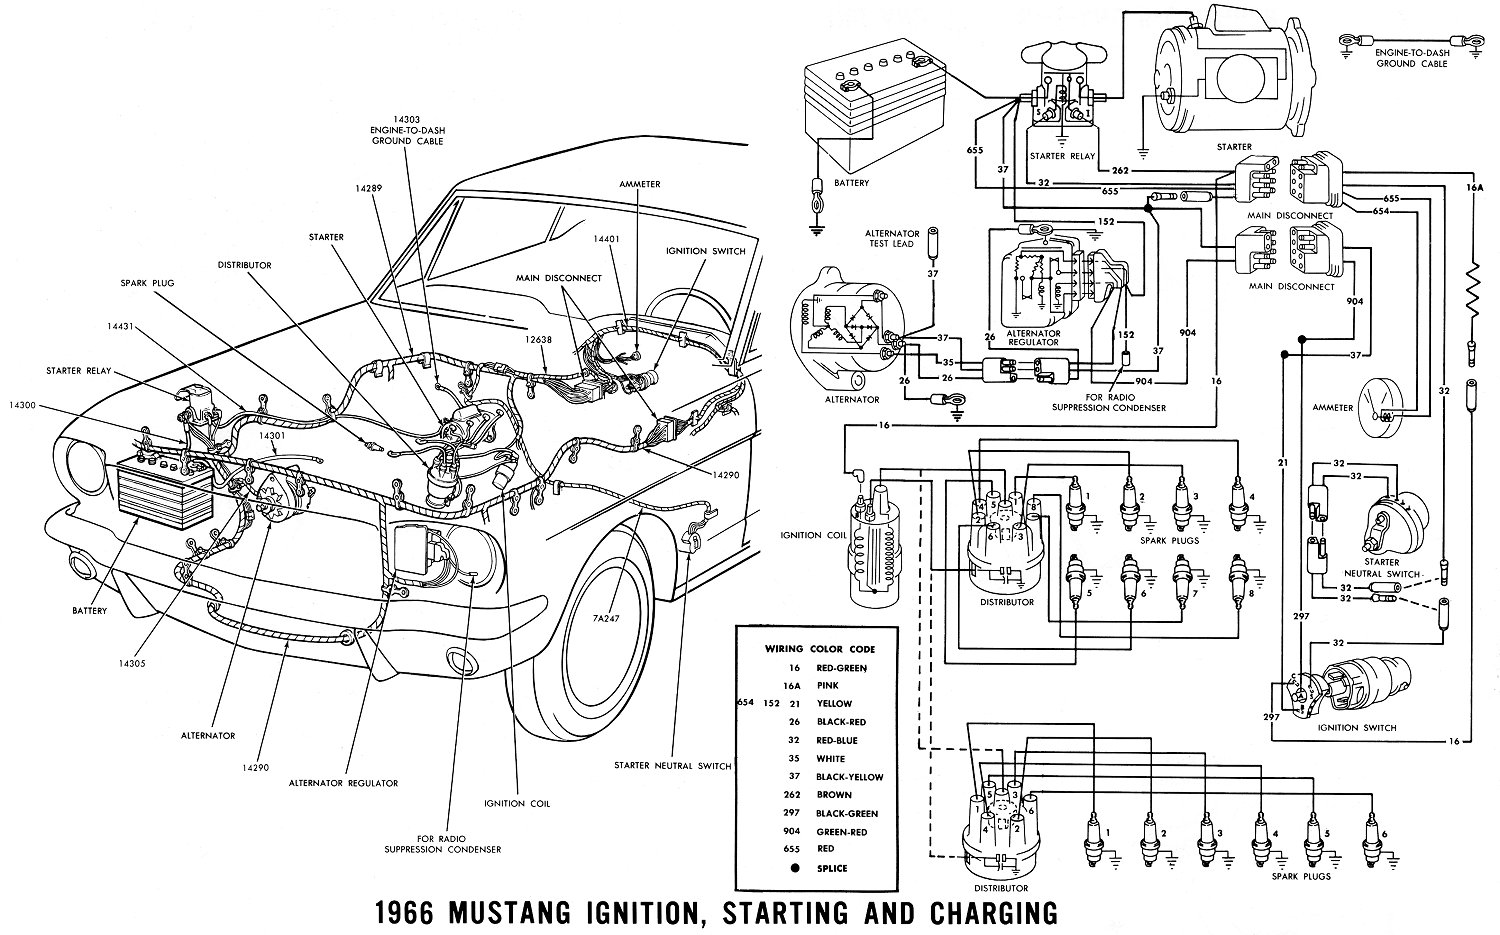 Ignition Switch Wiring Diagram Moreover 1965 Ford Mustang on 99 subaru forester wiring diagram